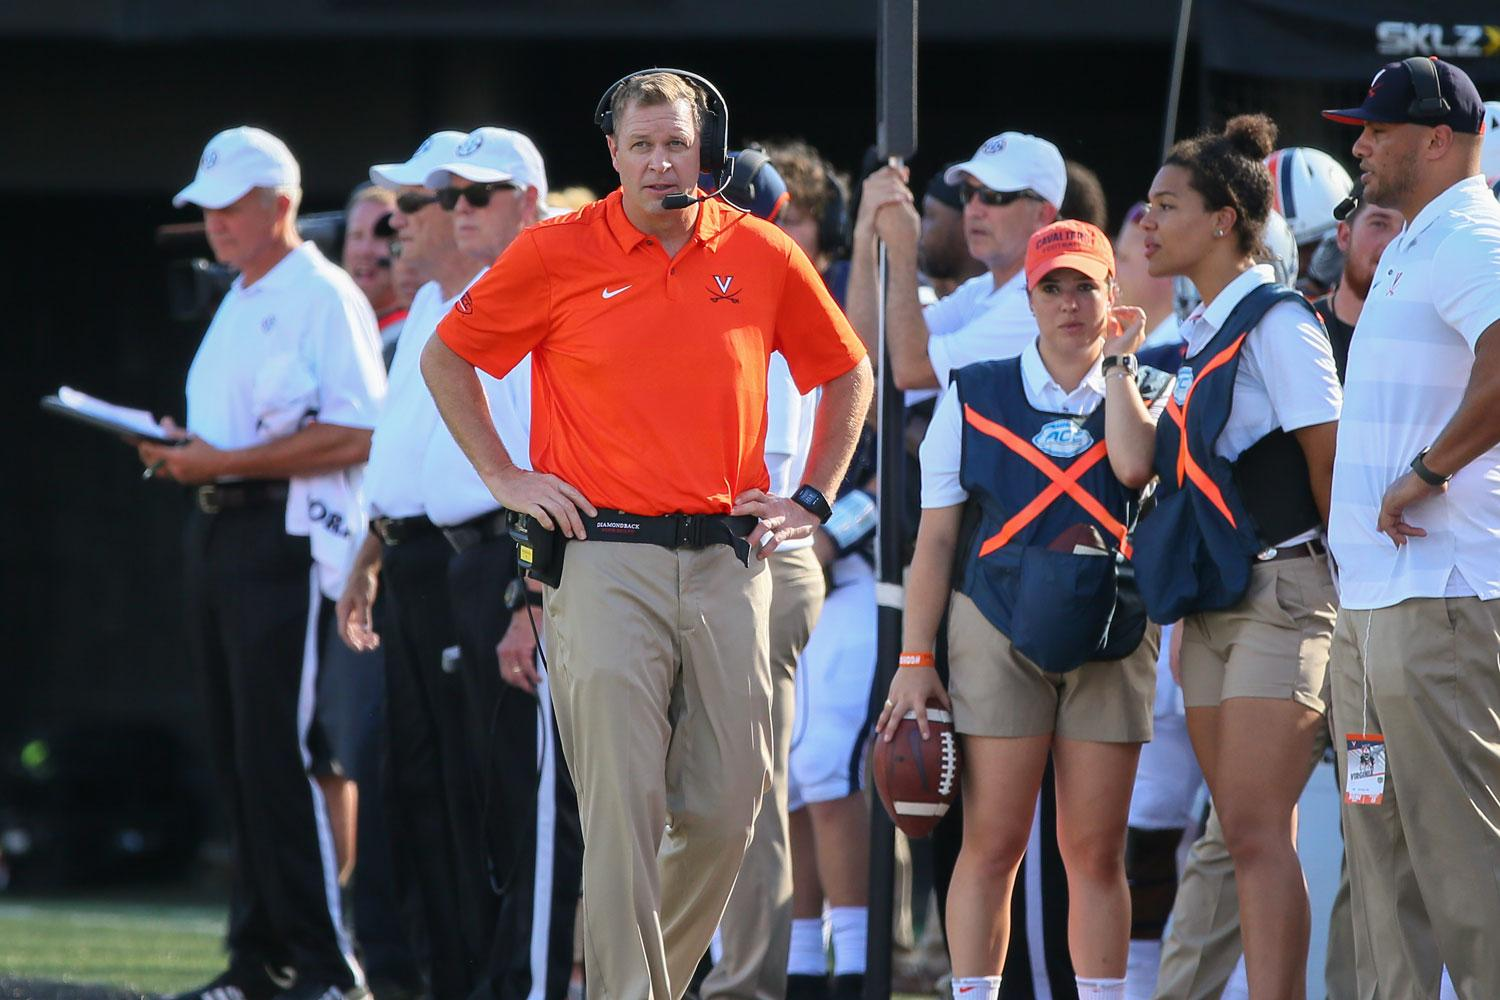 Bronco Mendenhall's $500,000 pledge to the University's $180 million athletics master plan campaign is the first to be publicly announced.